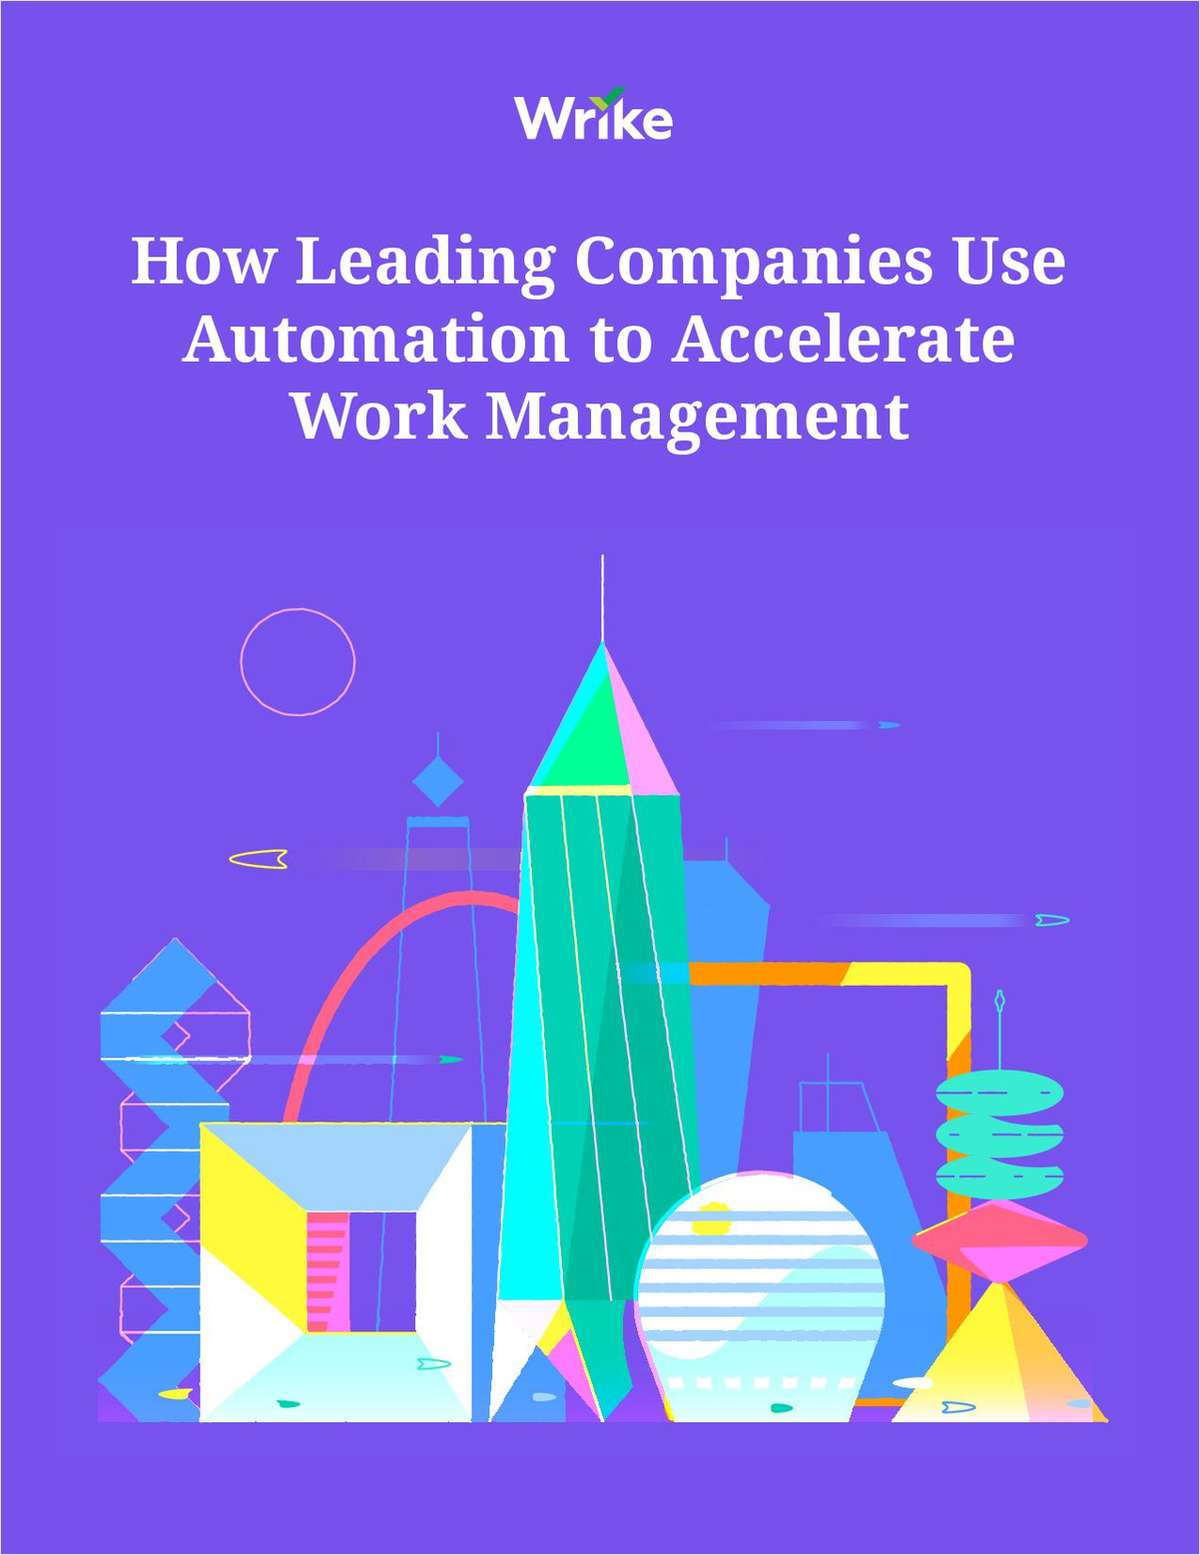 How Leading Companies Use Automation to Accelerate Work Management